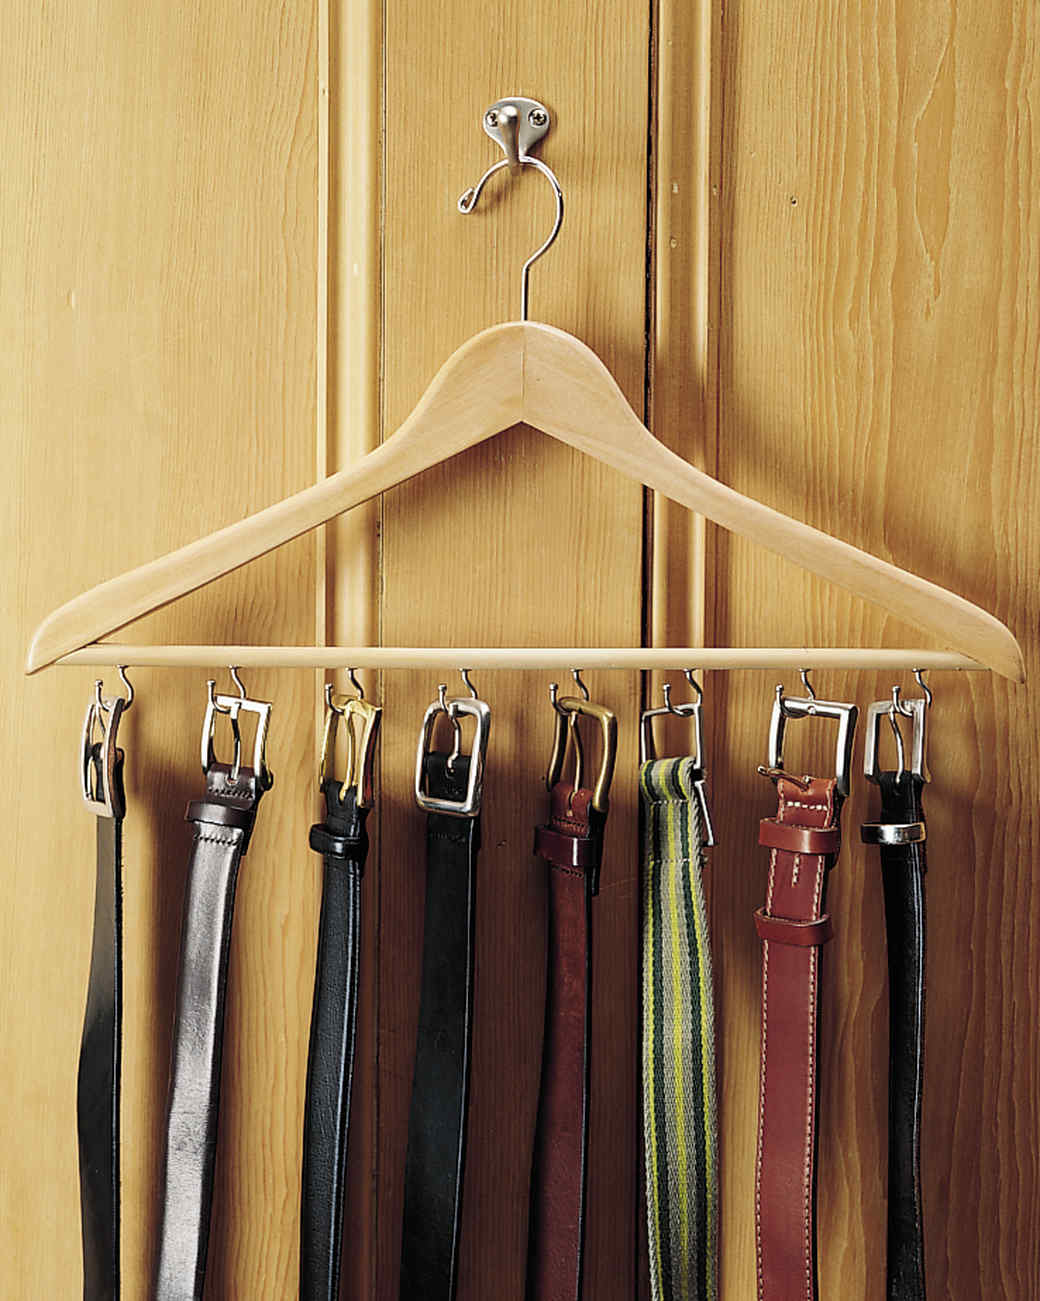 wardrobes ready accessories belt tie or rack simply to order